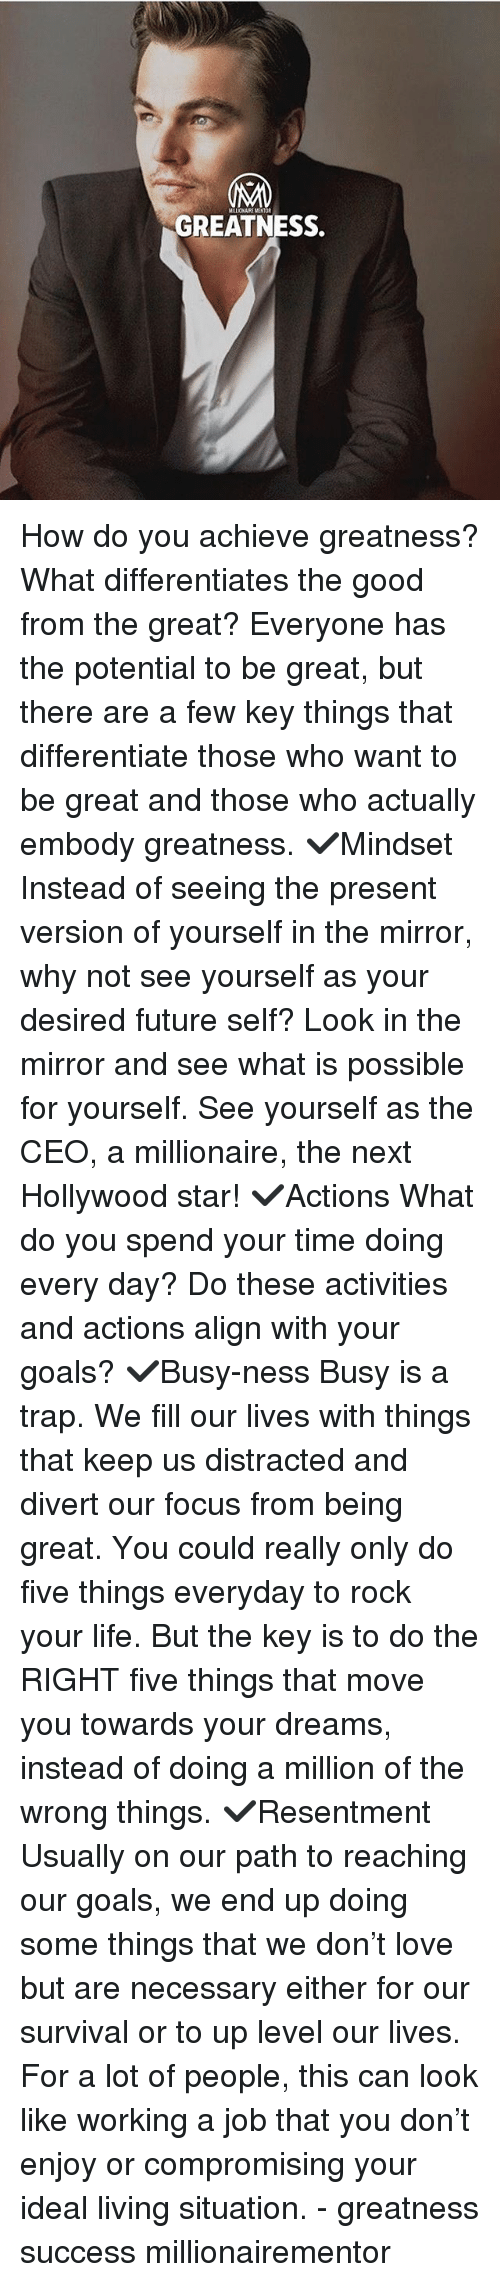 Future, Goals, and Life: GREATNESS. How do you achieve greatness? What differentiates the good from the great? Everyone has the potential to be great, but there are a few key things that differentiate those who want to be great and those who actually embody greatness. ✔️Mindset Instead of seeing the present version of yourself in the mirror, why not see yourself as your desired future self? Look in the mirror and see what is possible for yourself. See yourself as the CEO, a millionaire, the next Hollywood star! ✔️Actions What do you spend your time doing every day? Do these activities and actions align with your goals? ✔️Busy-ness Busy is a trap. We fill our lives with things that keep us distracted and divert our focus from being great. You could really only do five things everyday to rock your life. But the key is to do the RIGHT five things that move you towards your dreams, instead of doing a million of the wrong things. ✔️Resentment Usually on our path to reaching our goals, we end up doing some things that we don't love but are necessary either for our survival or to up level our lives. For a lot of people, this can look like working a job that you don't enjoy or compromising your ideal living situation. - greatness success millionairementor